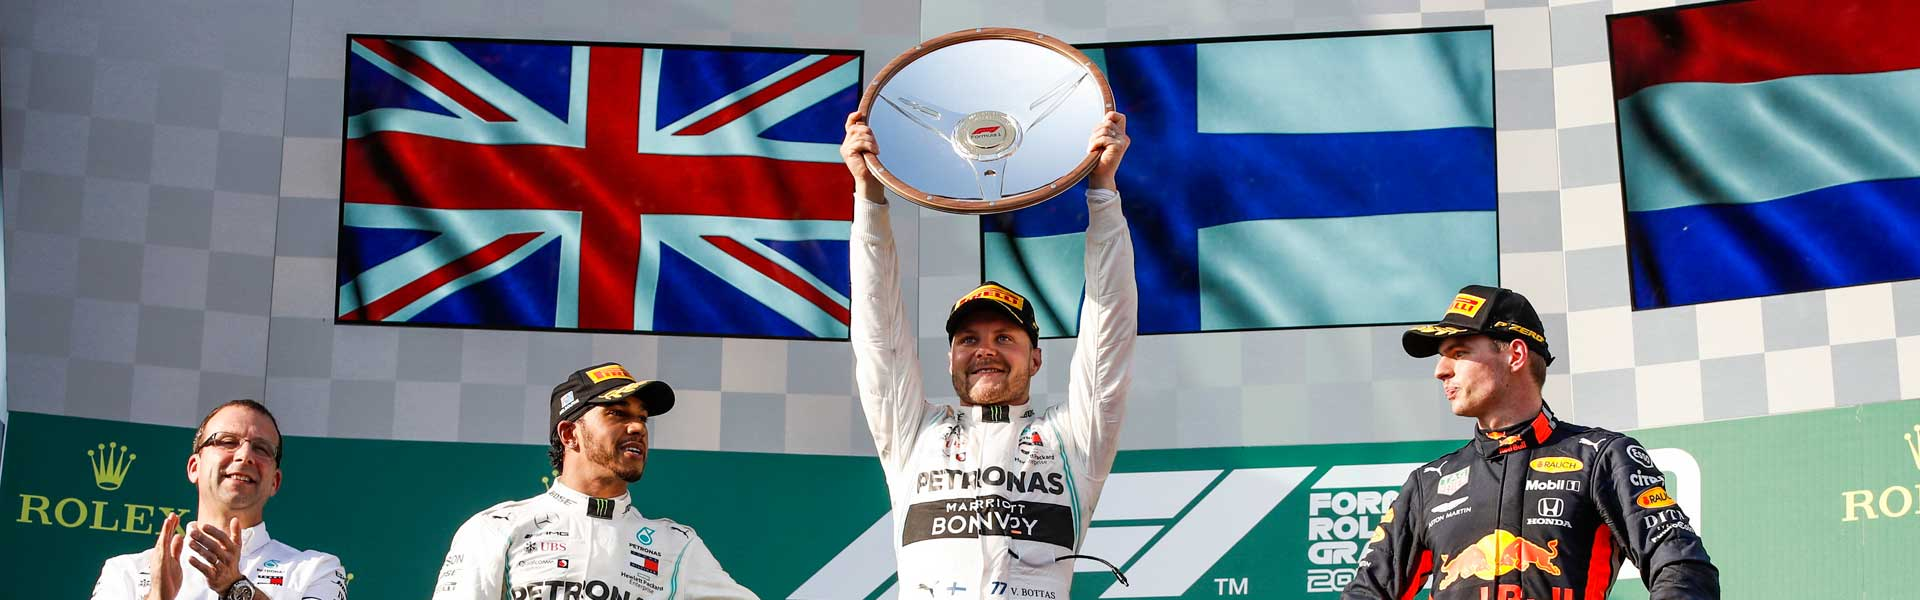 GUEST COLUMN: Valtteri Bottas – The Best is Yet to Come!